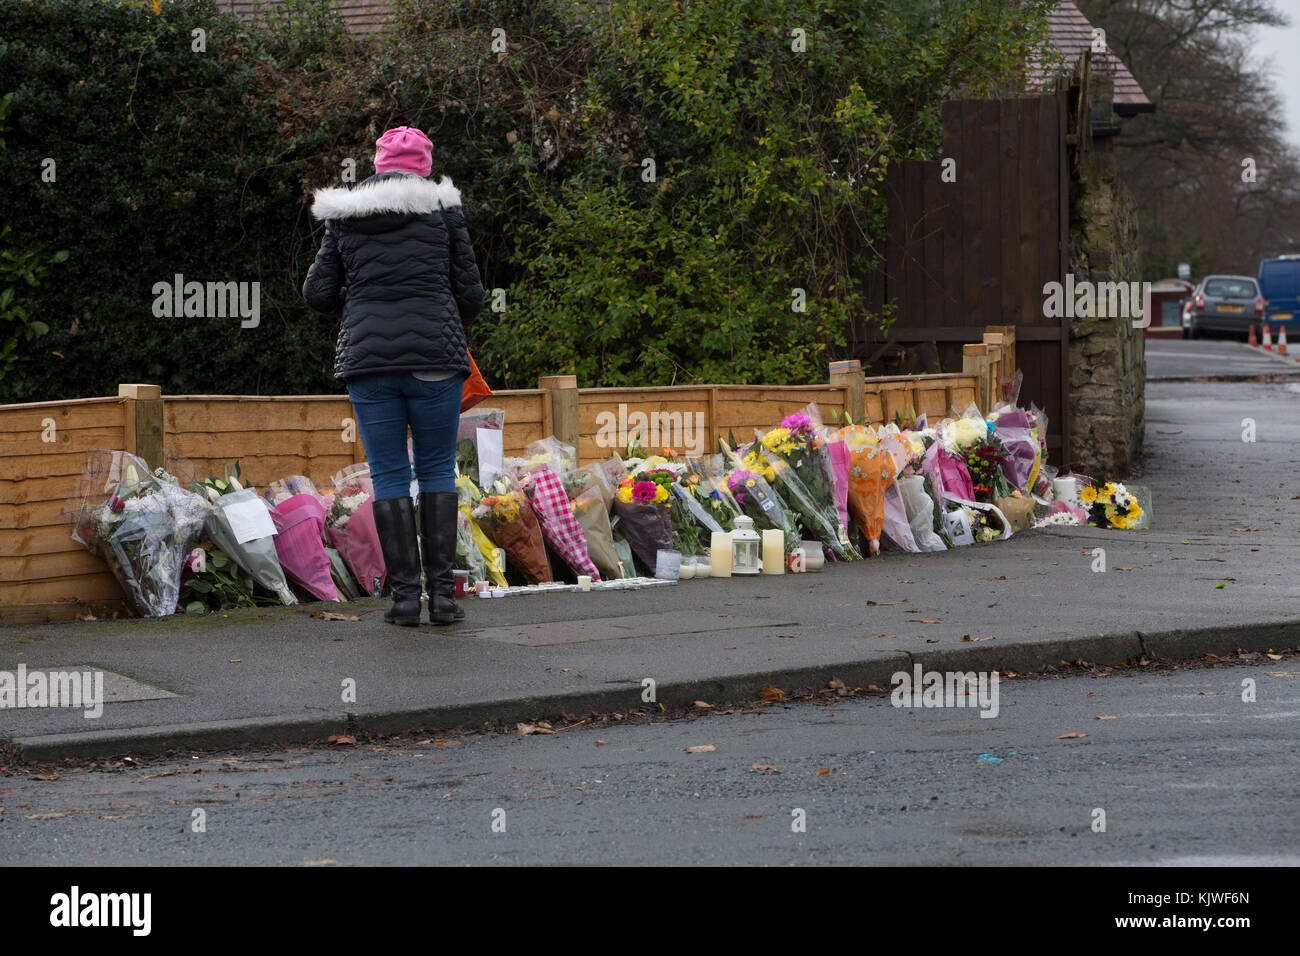 Leeds, UK. 27 November 2017. Police remain at the scene of Saturday's car accident on Stonegate Road in Leeds, whilst - Stock Image